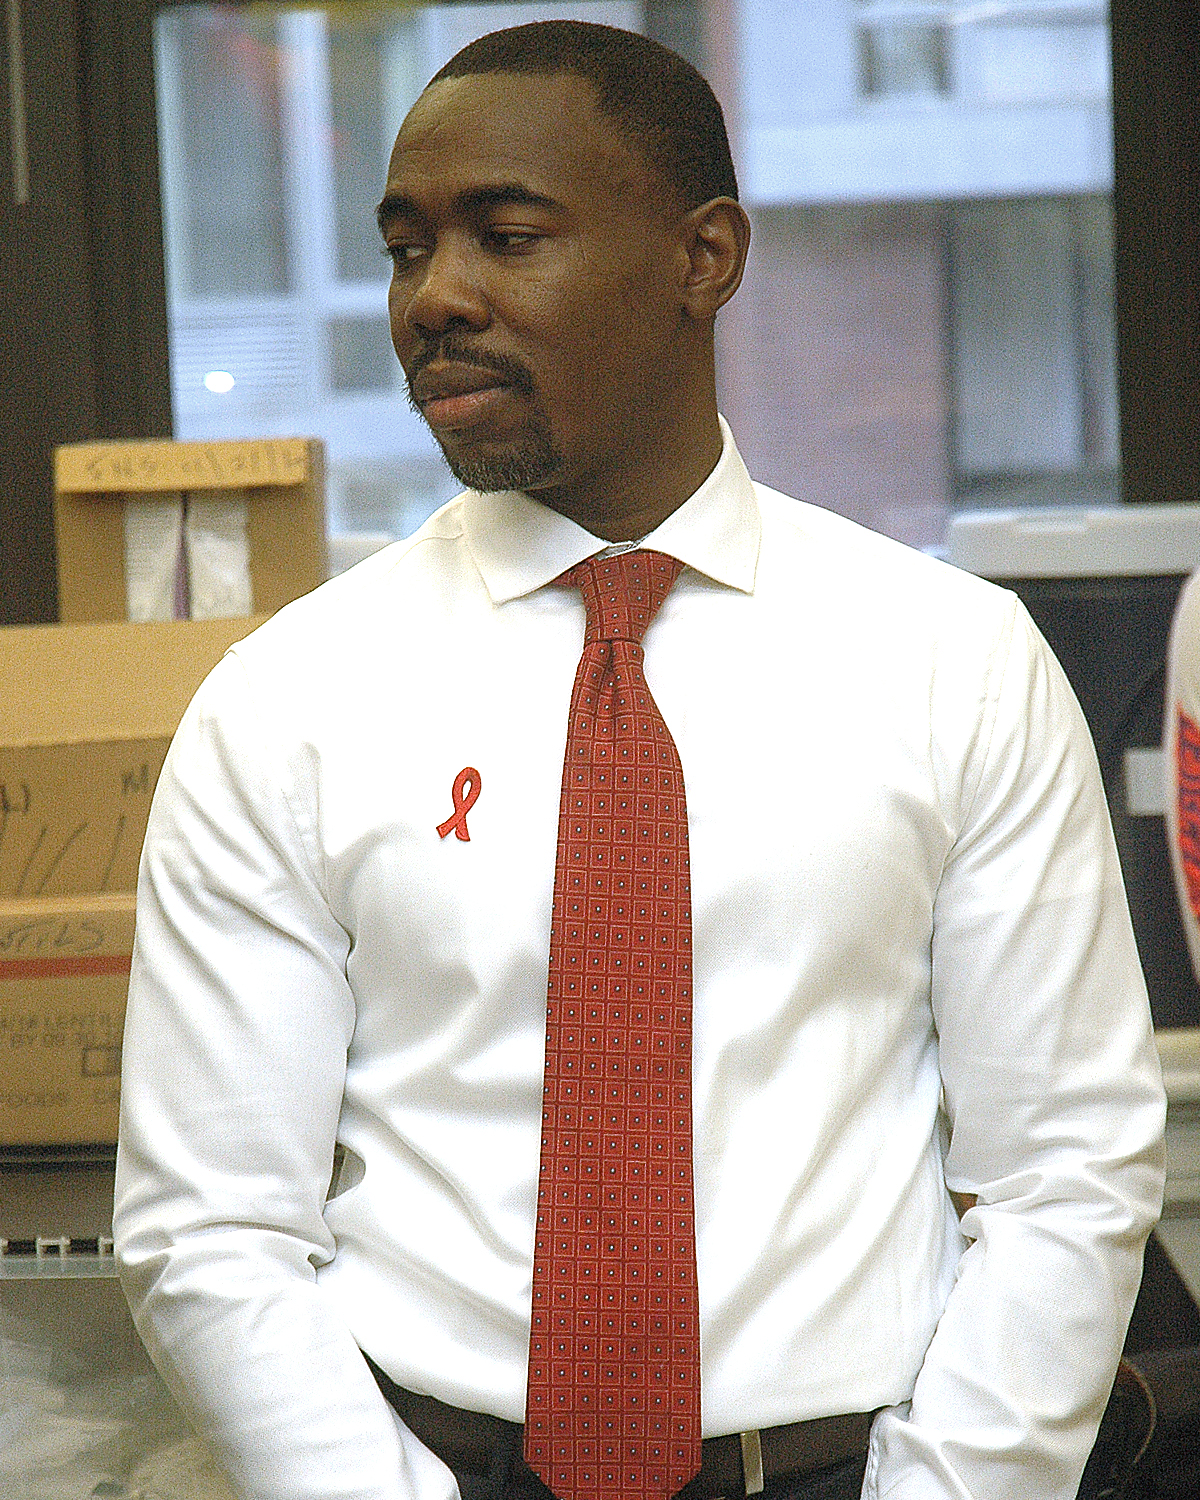 AIDS In Our Community: Reading of Names - Jean Pierre Louis, Associate Manager